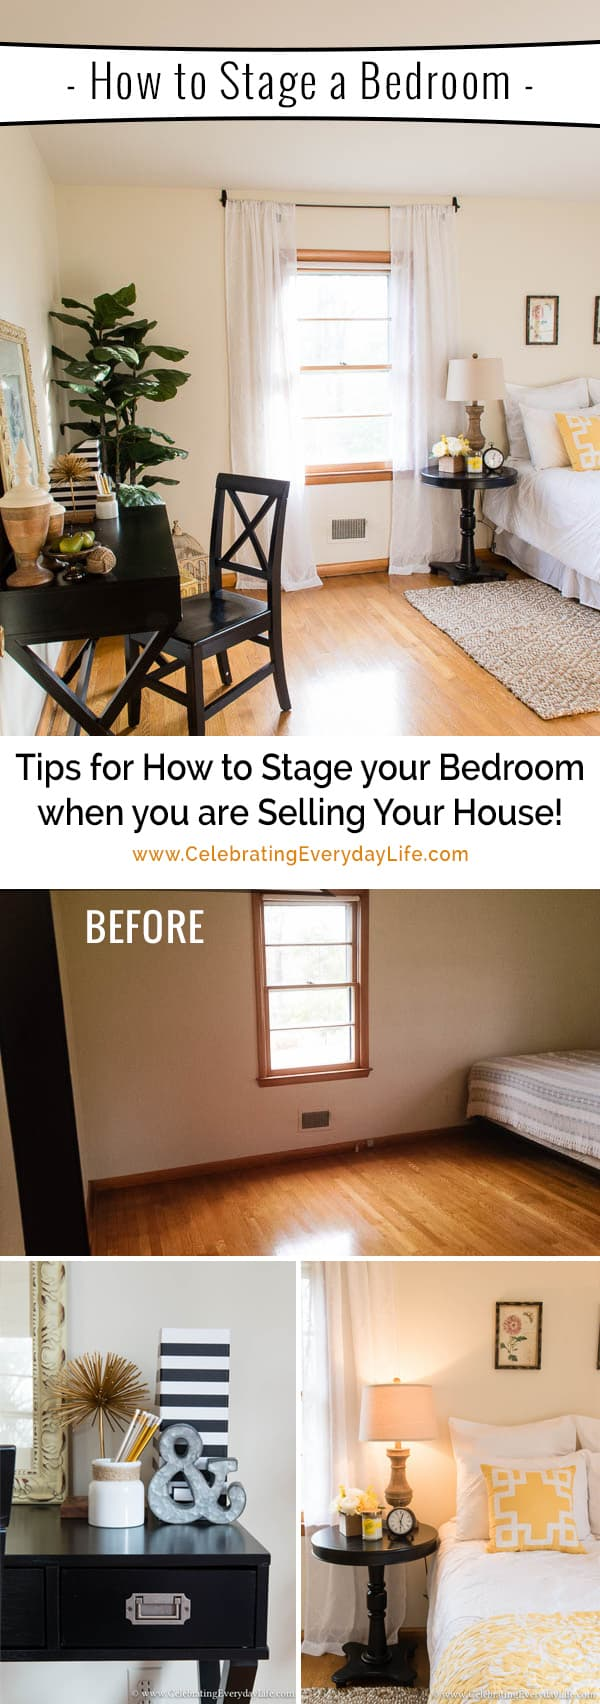 tips for how to stage a bedroom to sell! - celebrating everyday